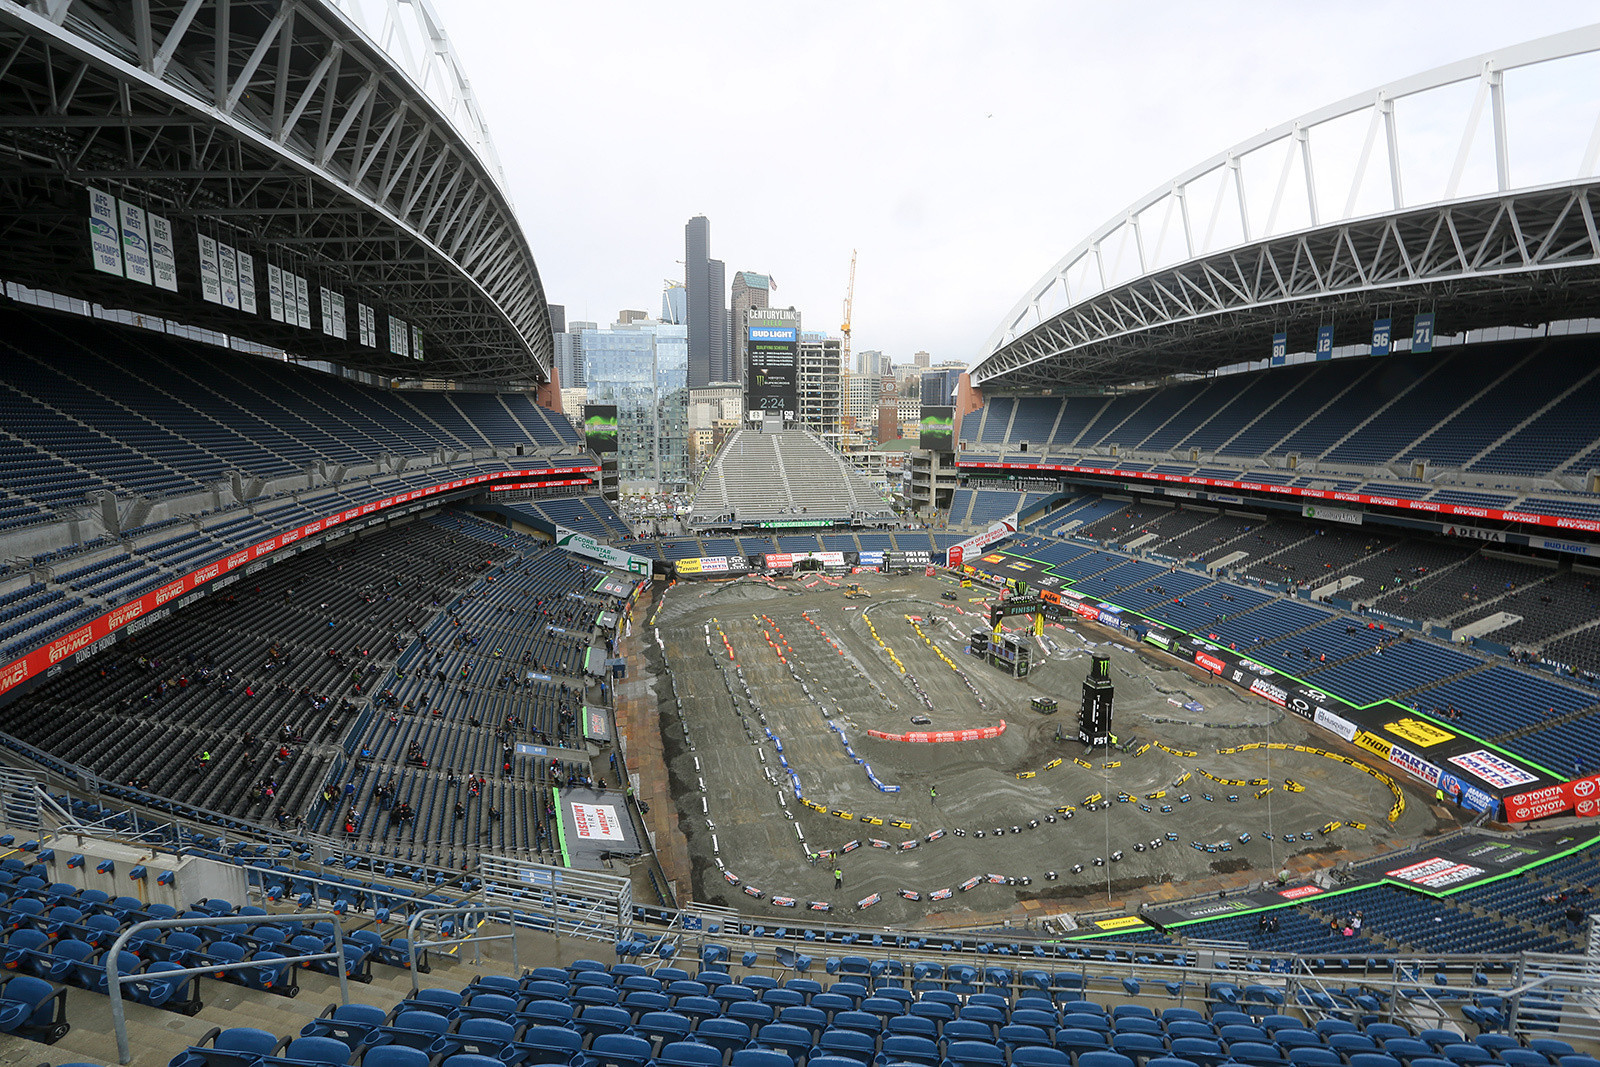 Supercross seats might be empty but Motocross doesn't want to run without fans.